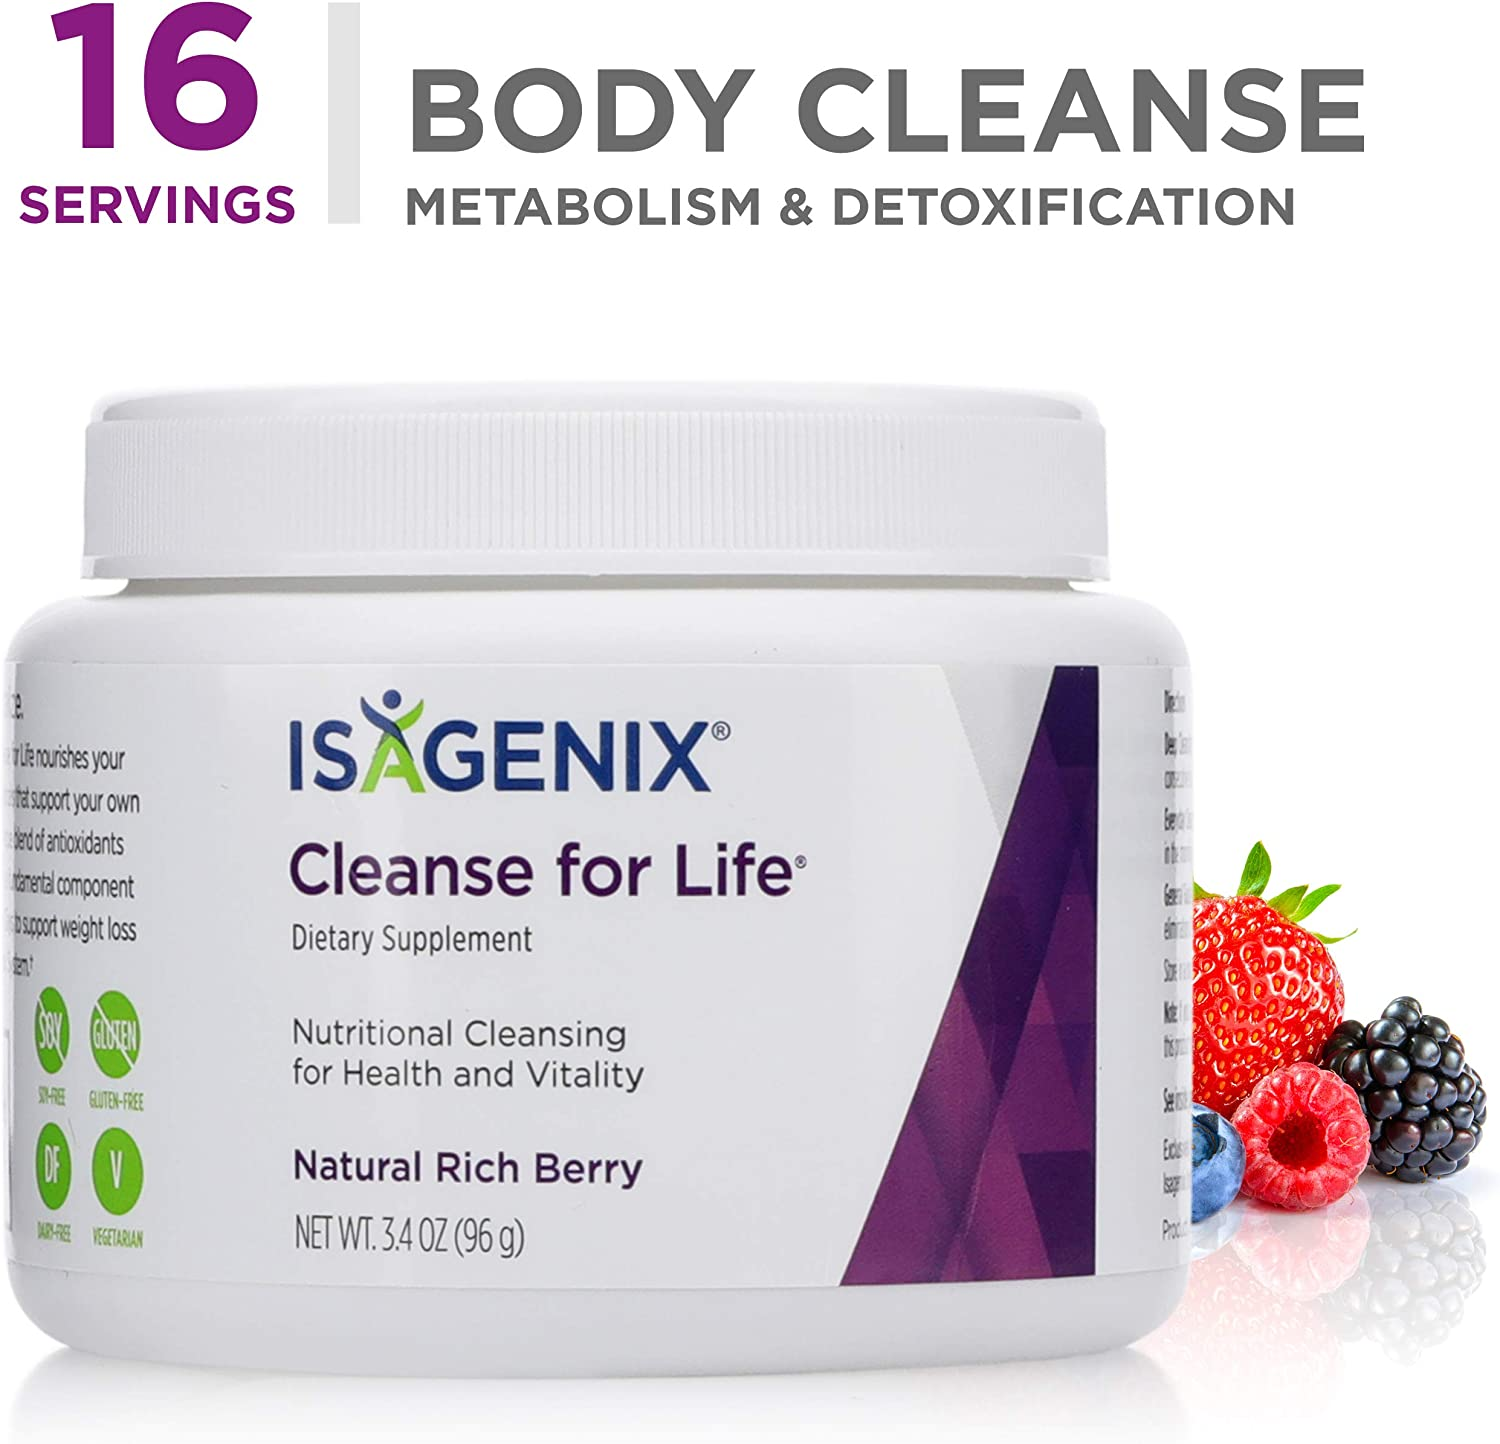 Cleanse for Life – Natural Rich Berry Flavor Powder – 96 g 3.4 Ounce Canister